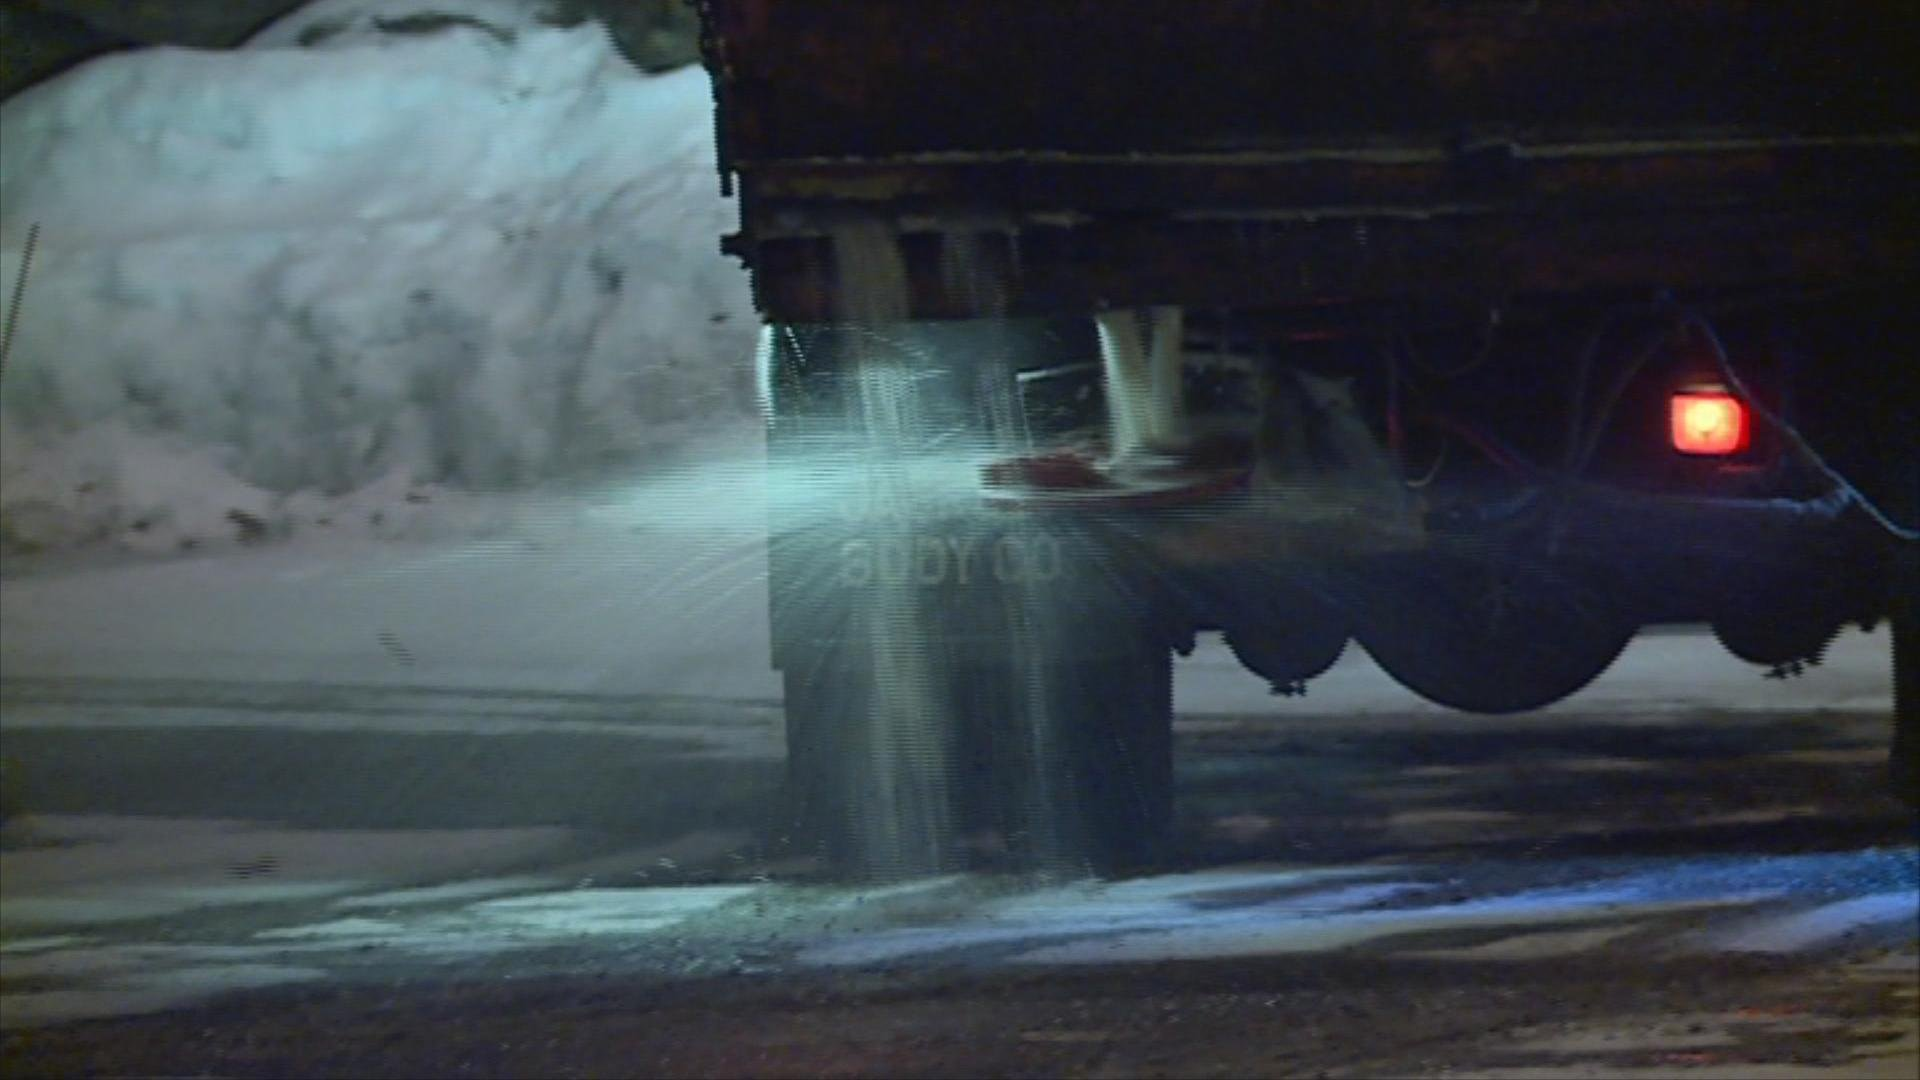 There's a new push to use less salt to melt ice and snow this winter.